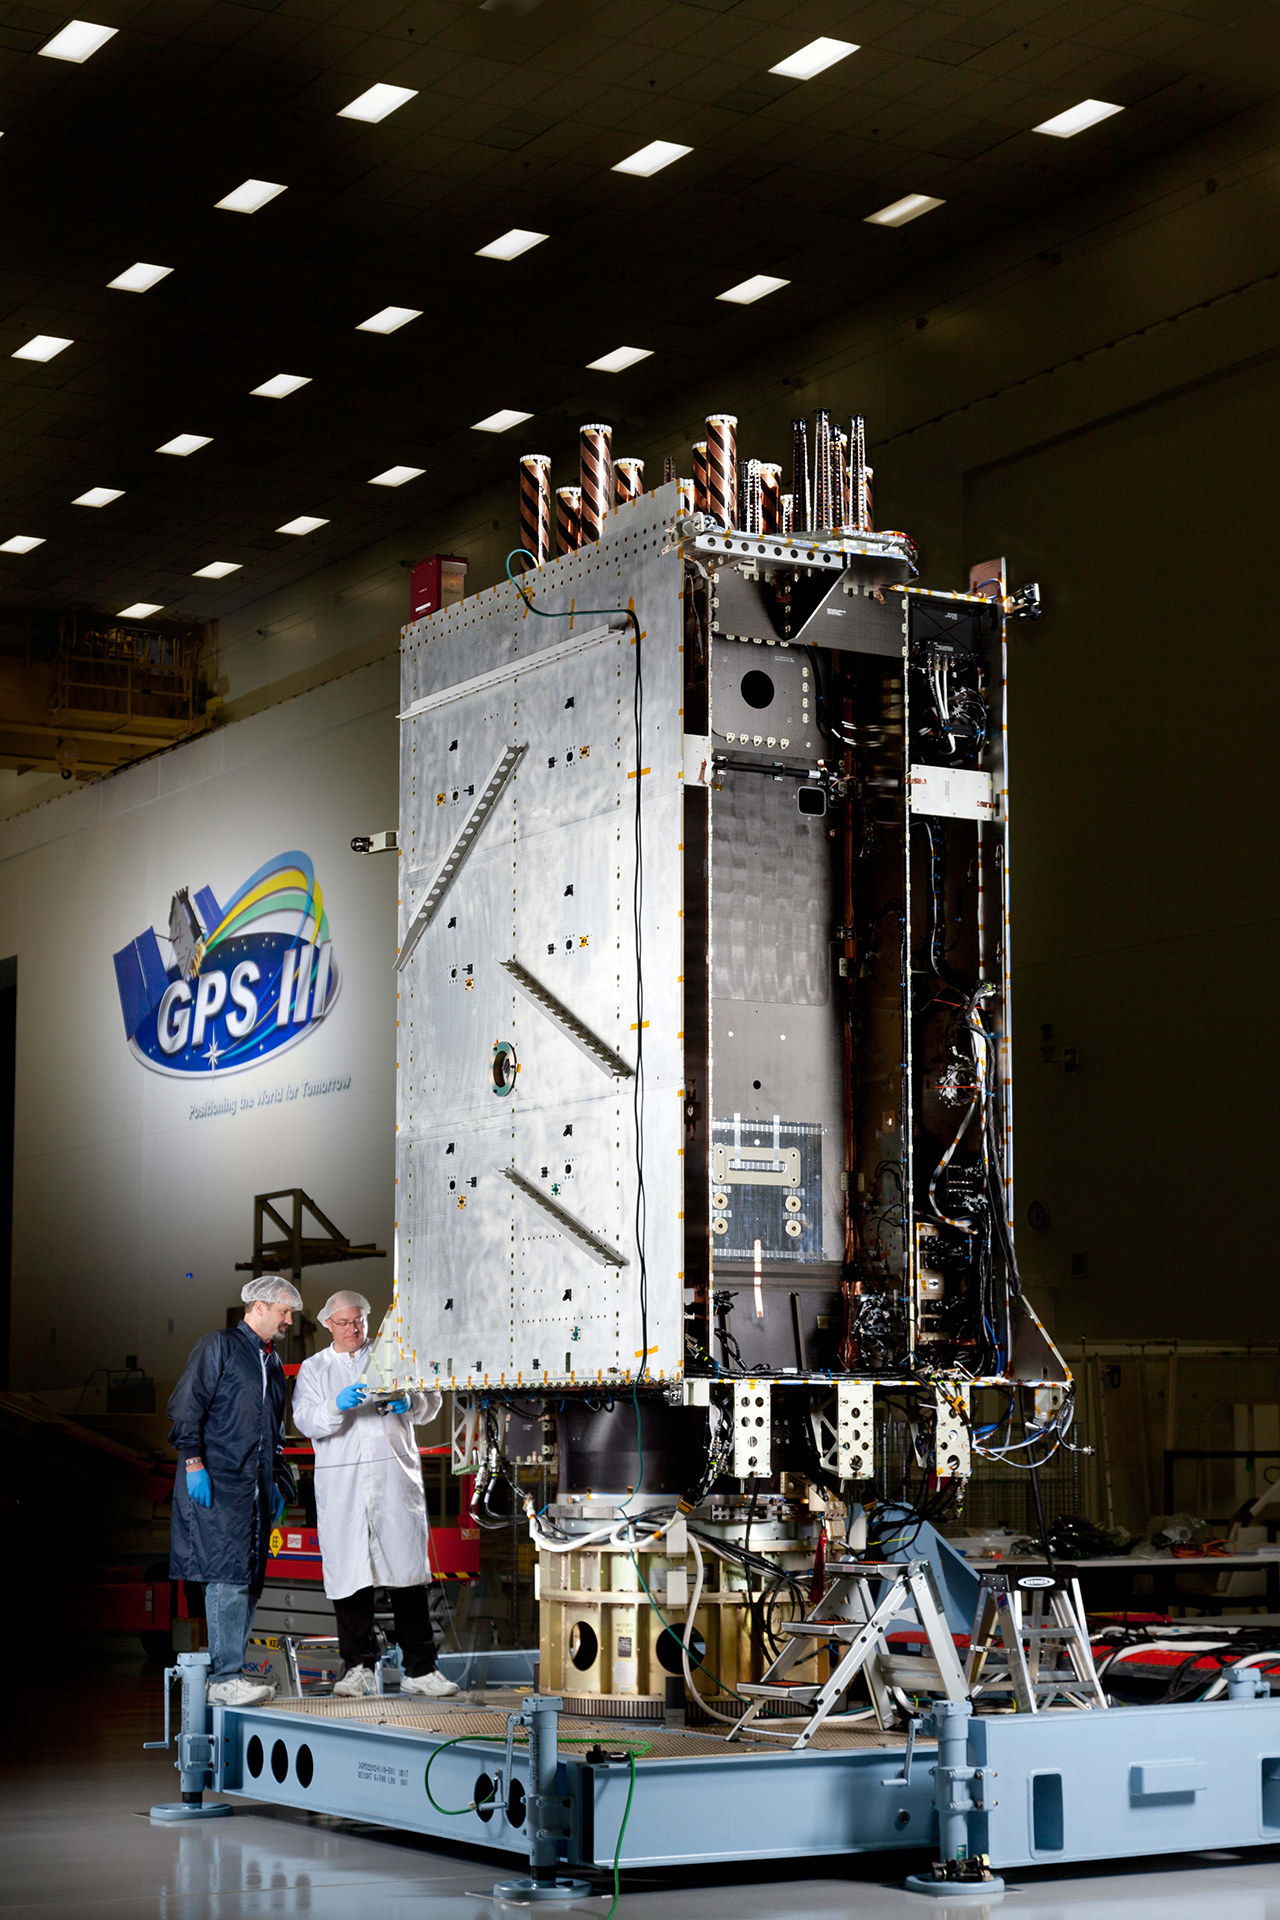 GPS III Non-Flight Satellite Testbed